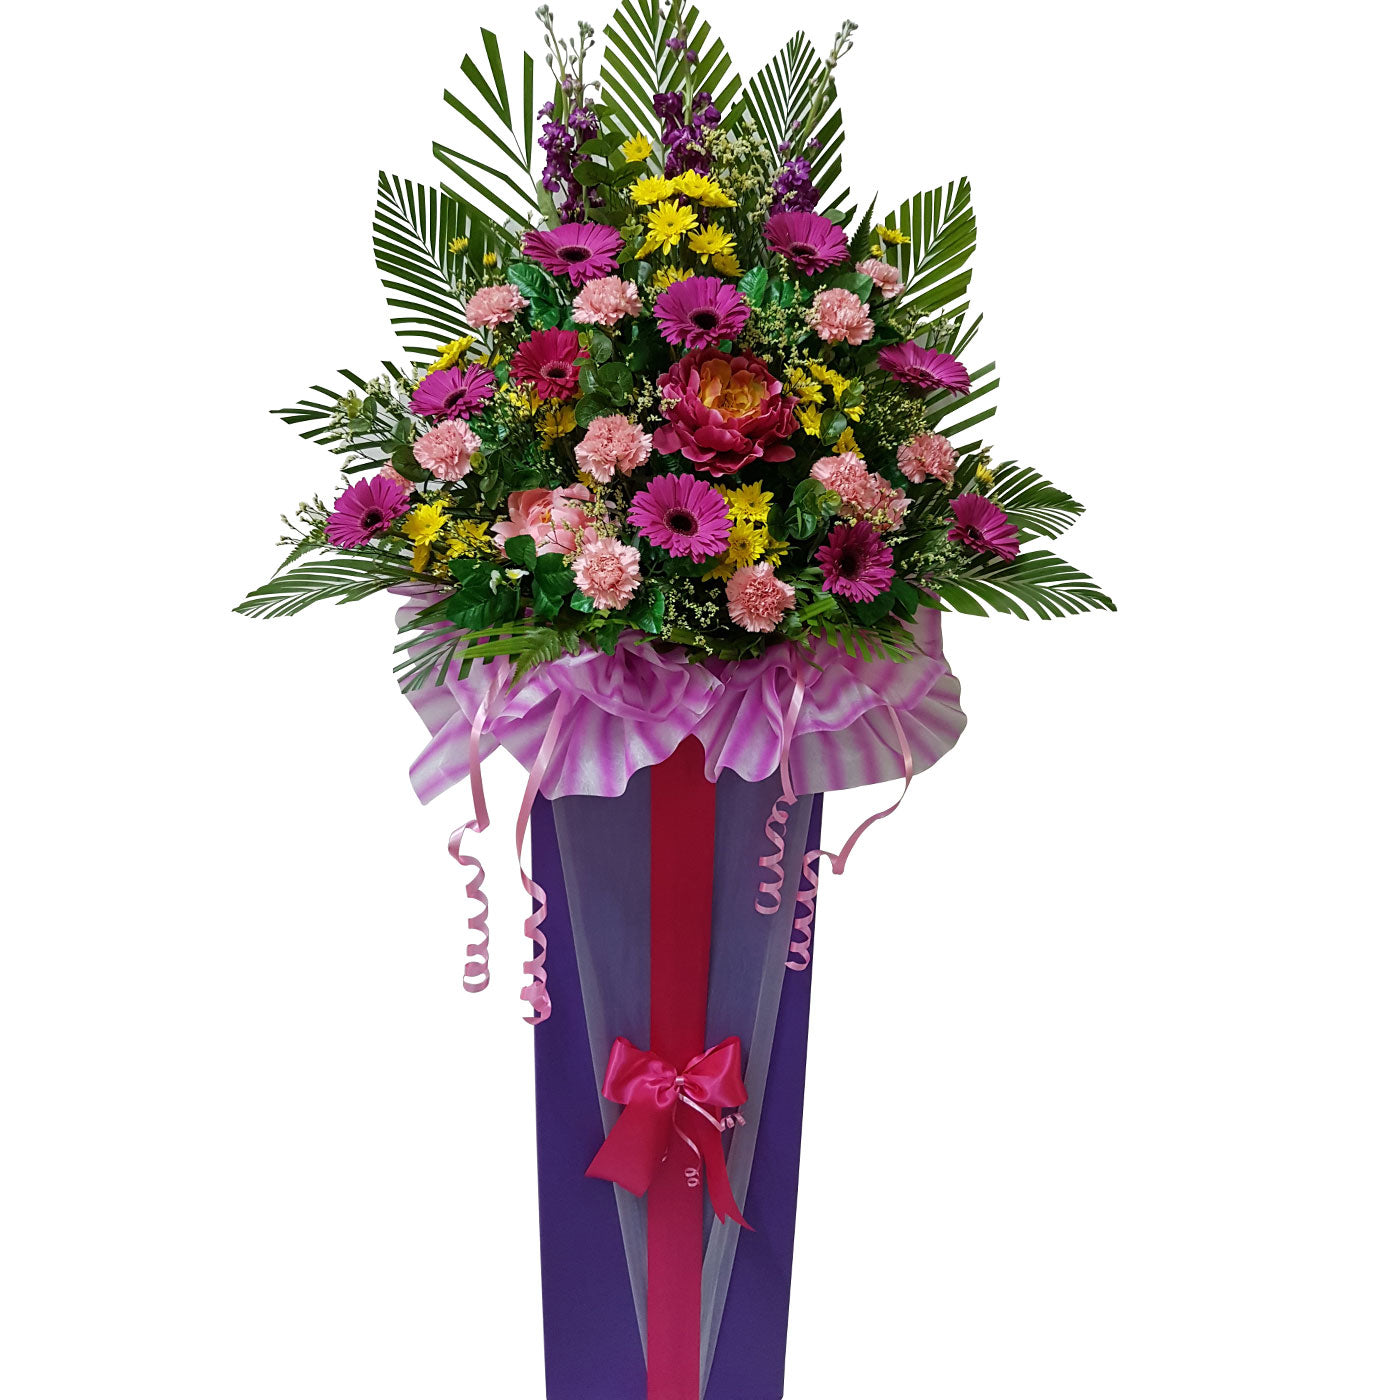 Floral stand 06 hong lim florists floral stand 06 izmirmasajfo Images